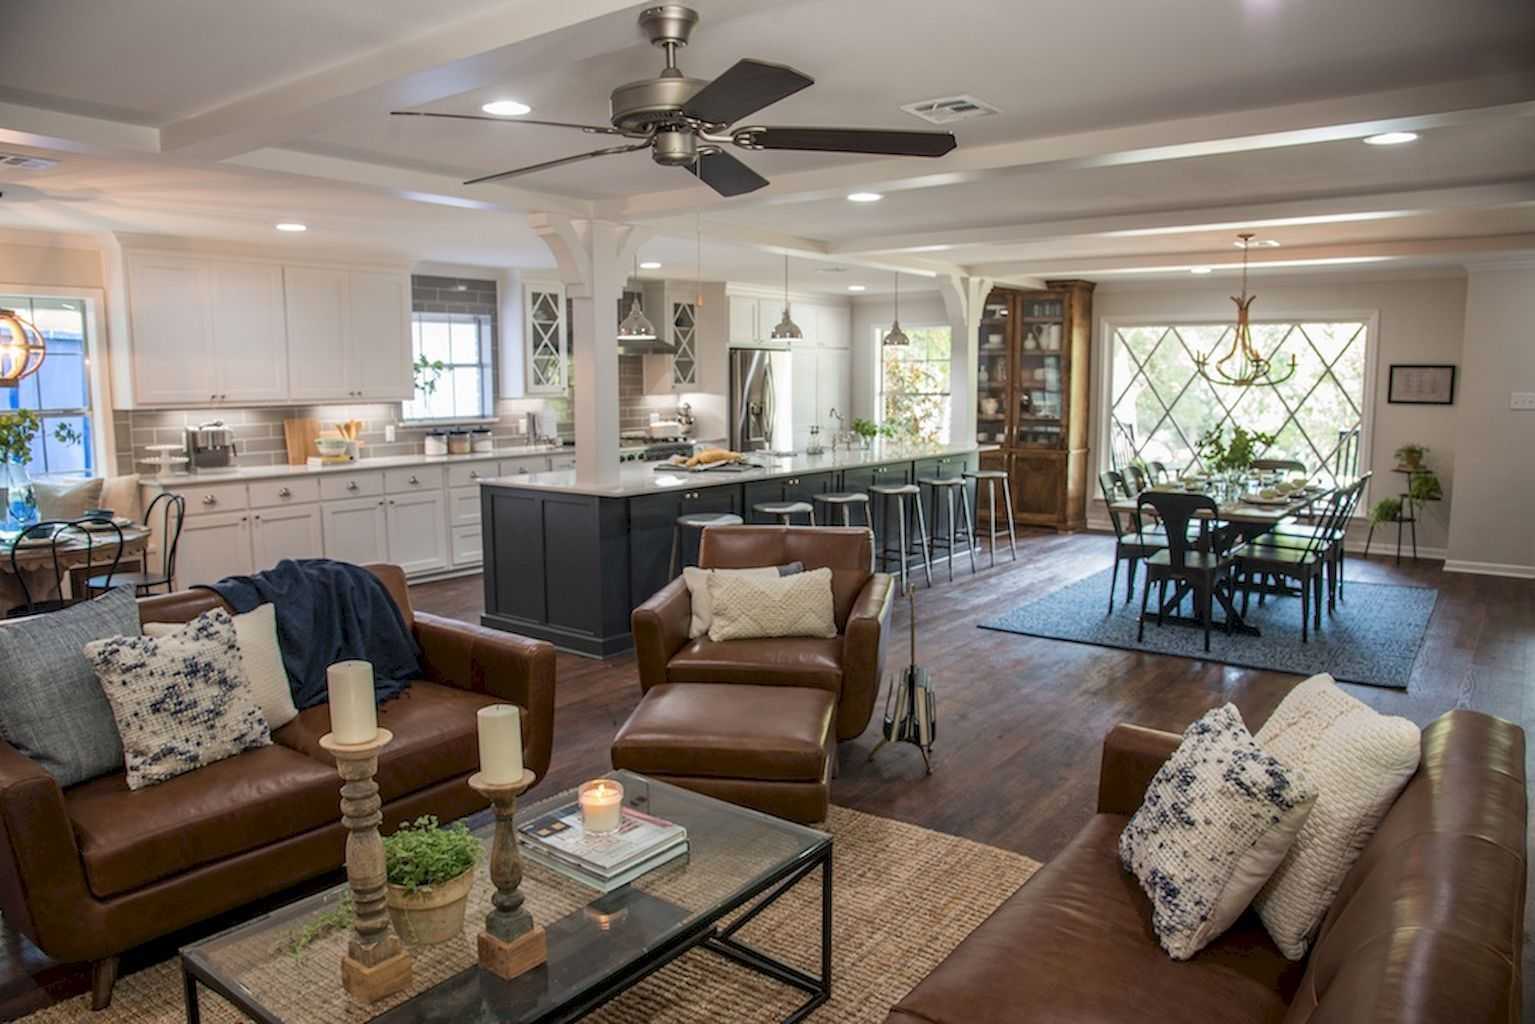 60 amazing farmhouse style living room design ideas (1